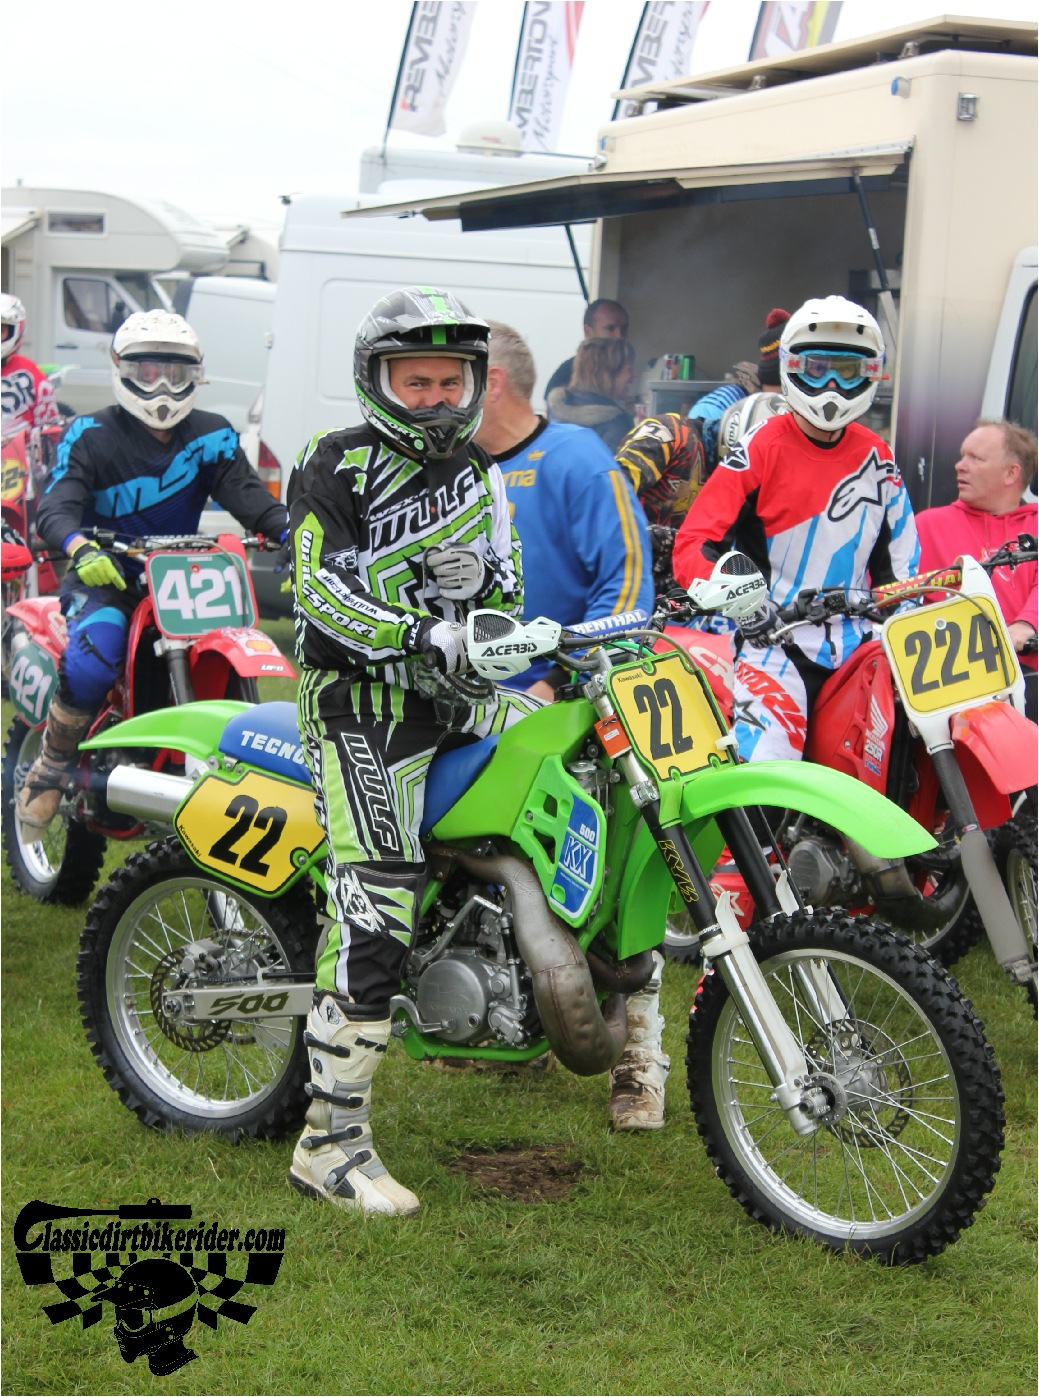 classicdirtbikerider.com-national-twinshock-championship-2015-Garstang-riders get ready for practice 11